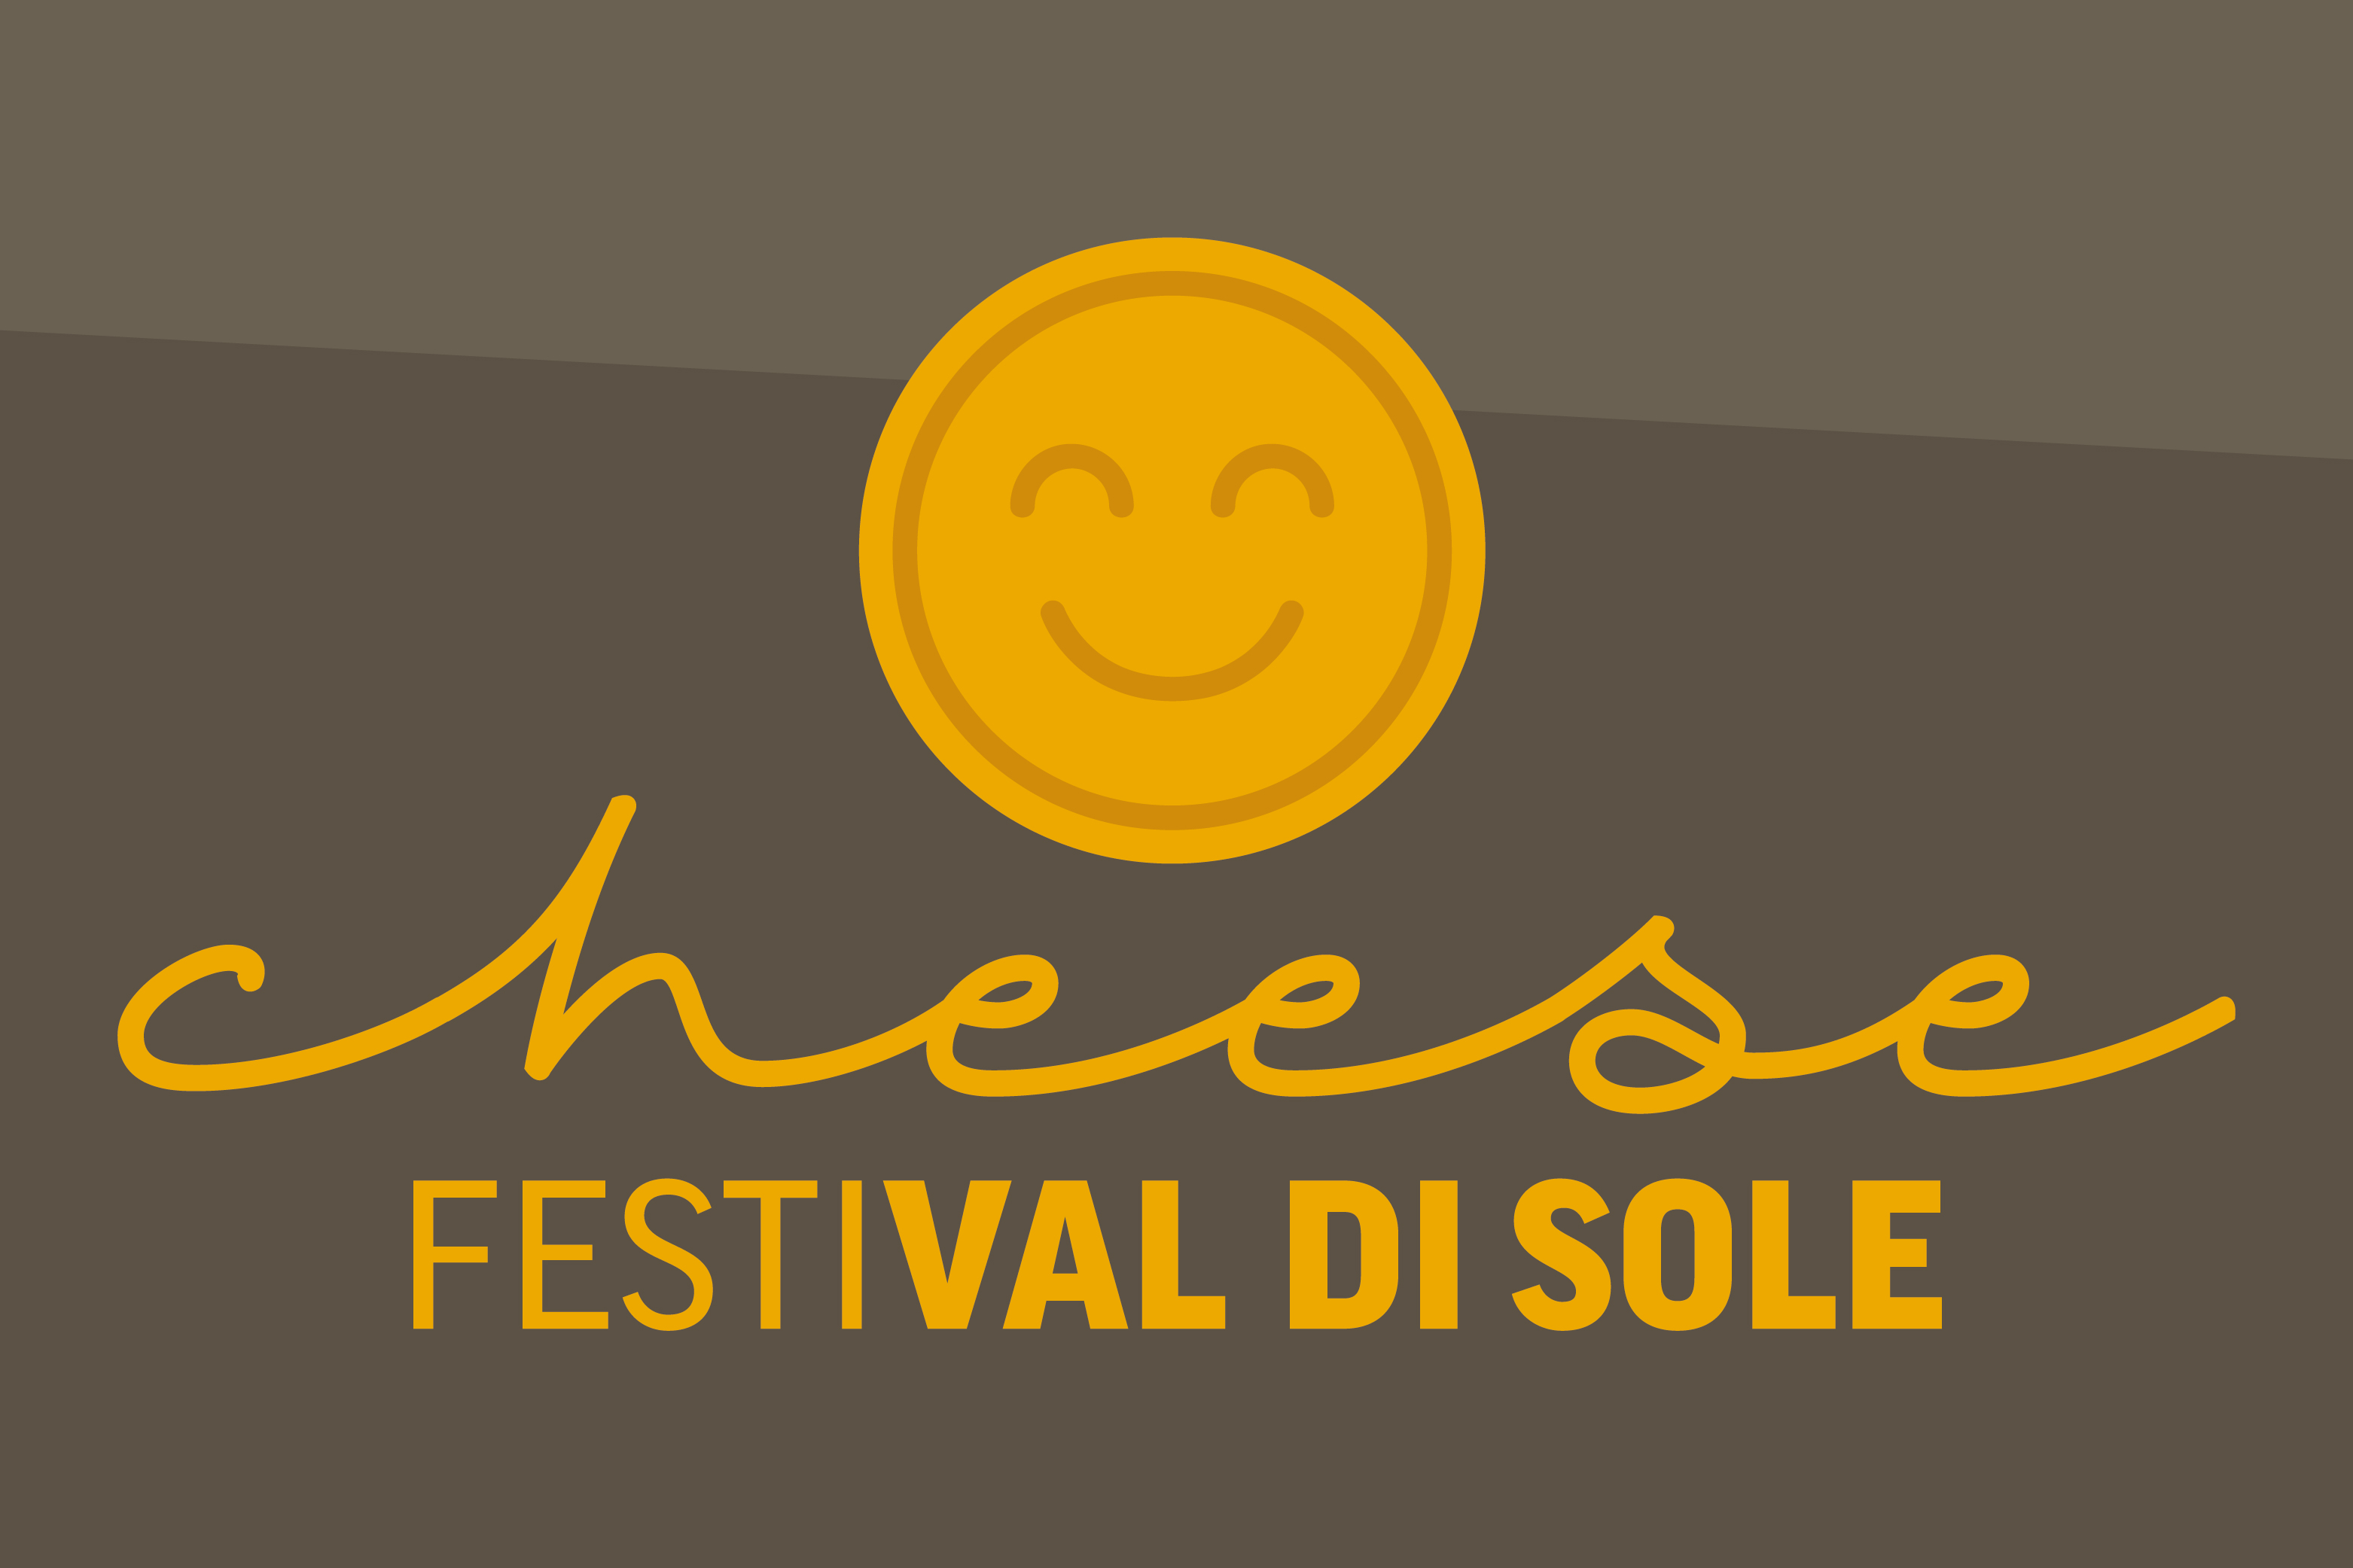 Cheese FestiVal di Sole